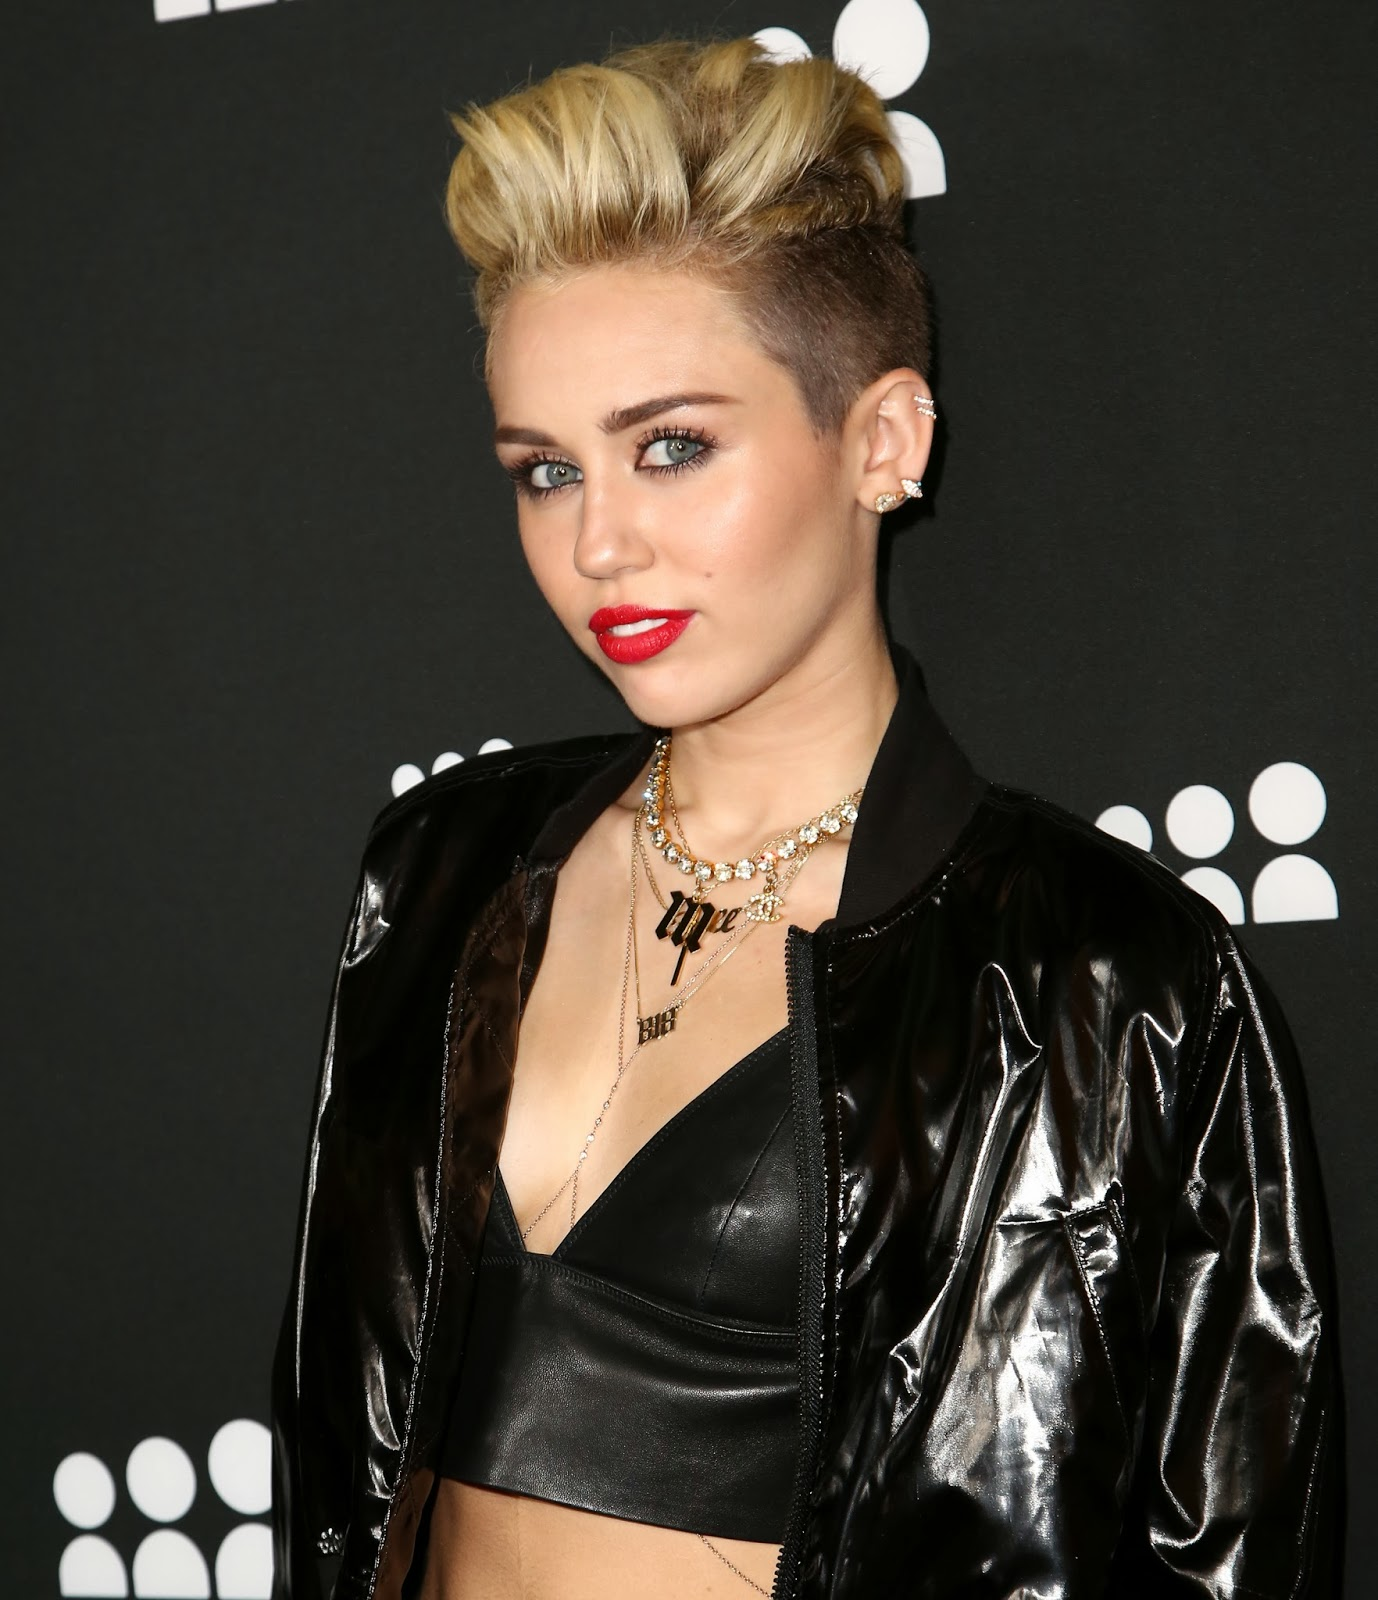 Miley Cyrus wearing an Initial Necklace and other personalized jewelry.